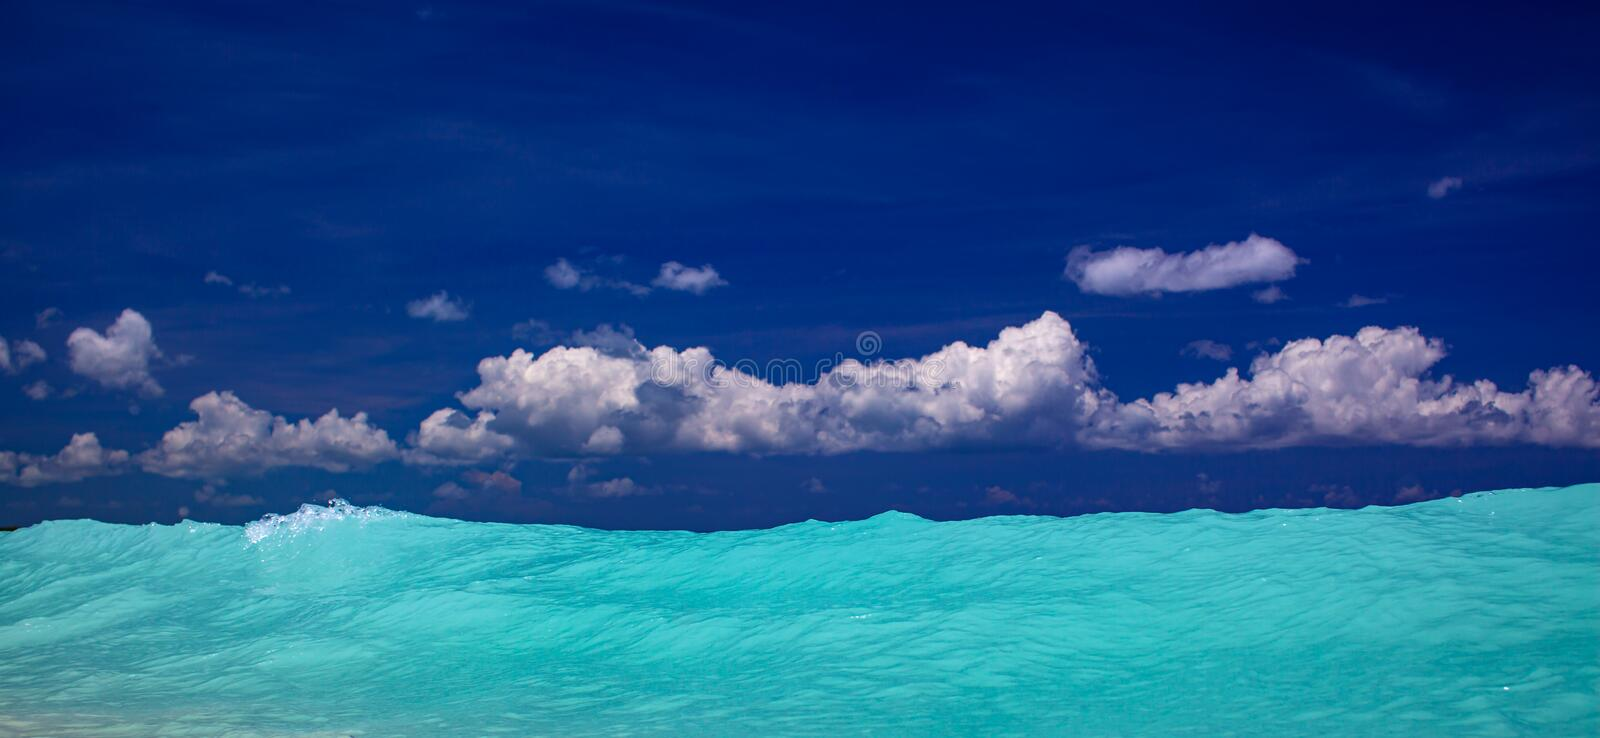 Tropical carribean beach with crystal clear water, blue sky and sea royalty free stock image